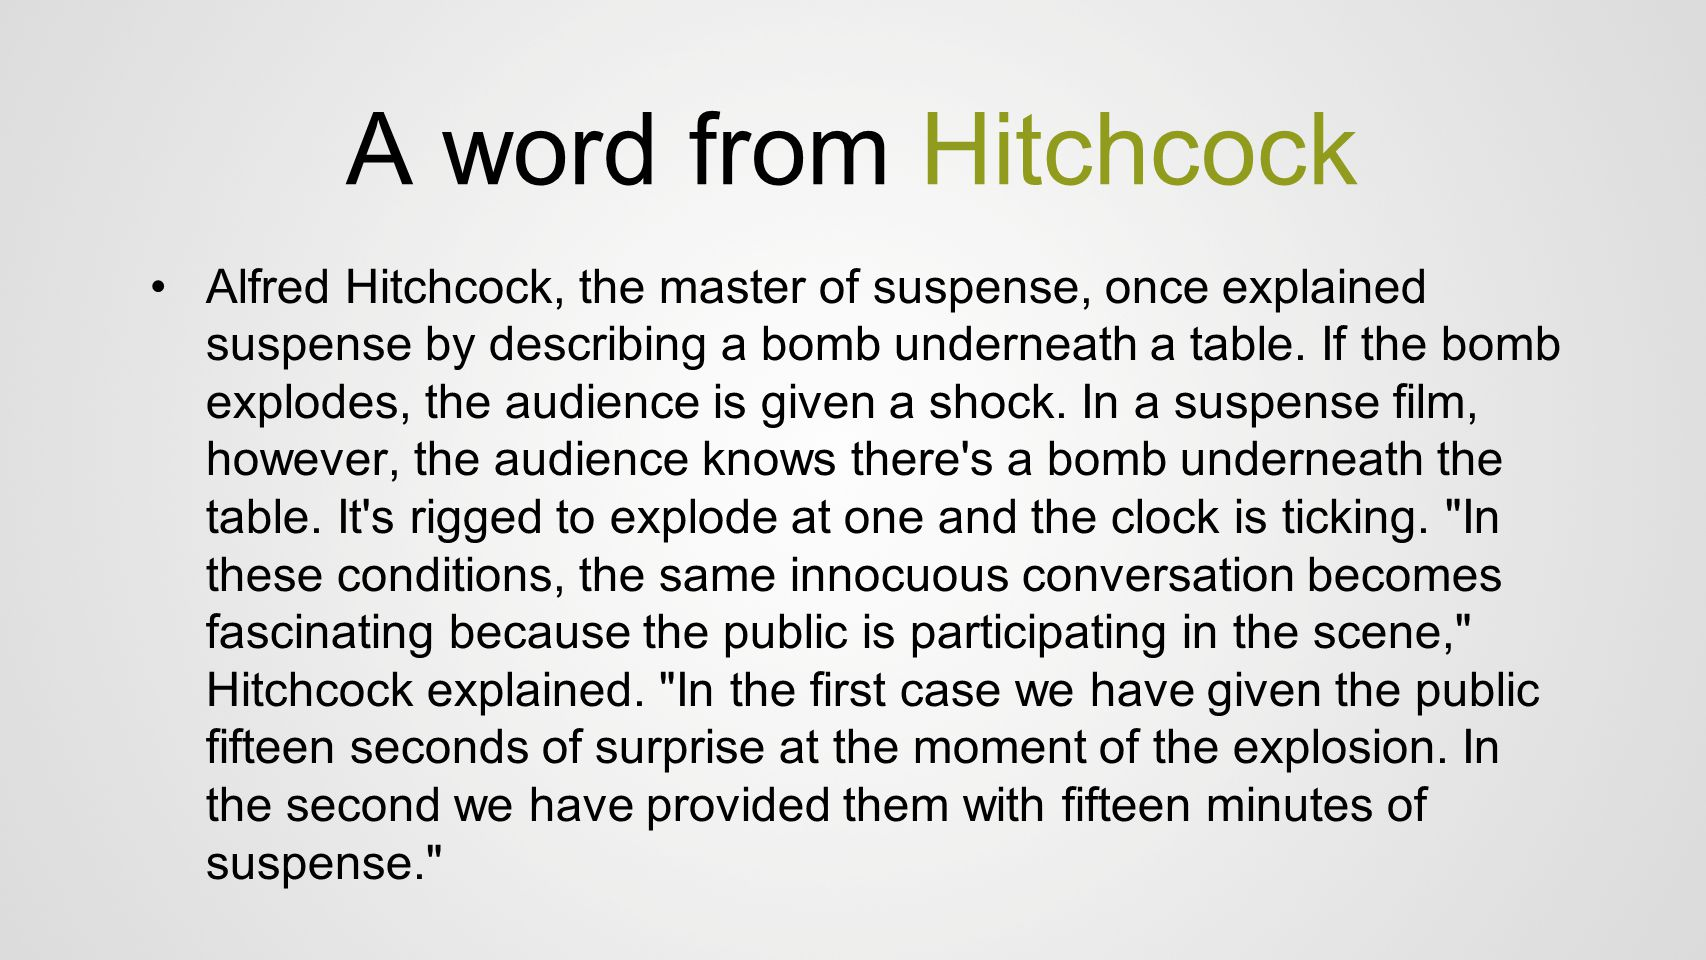 A word from Hitchcock